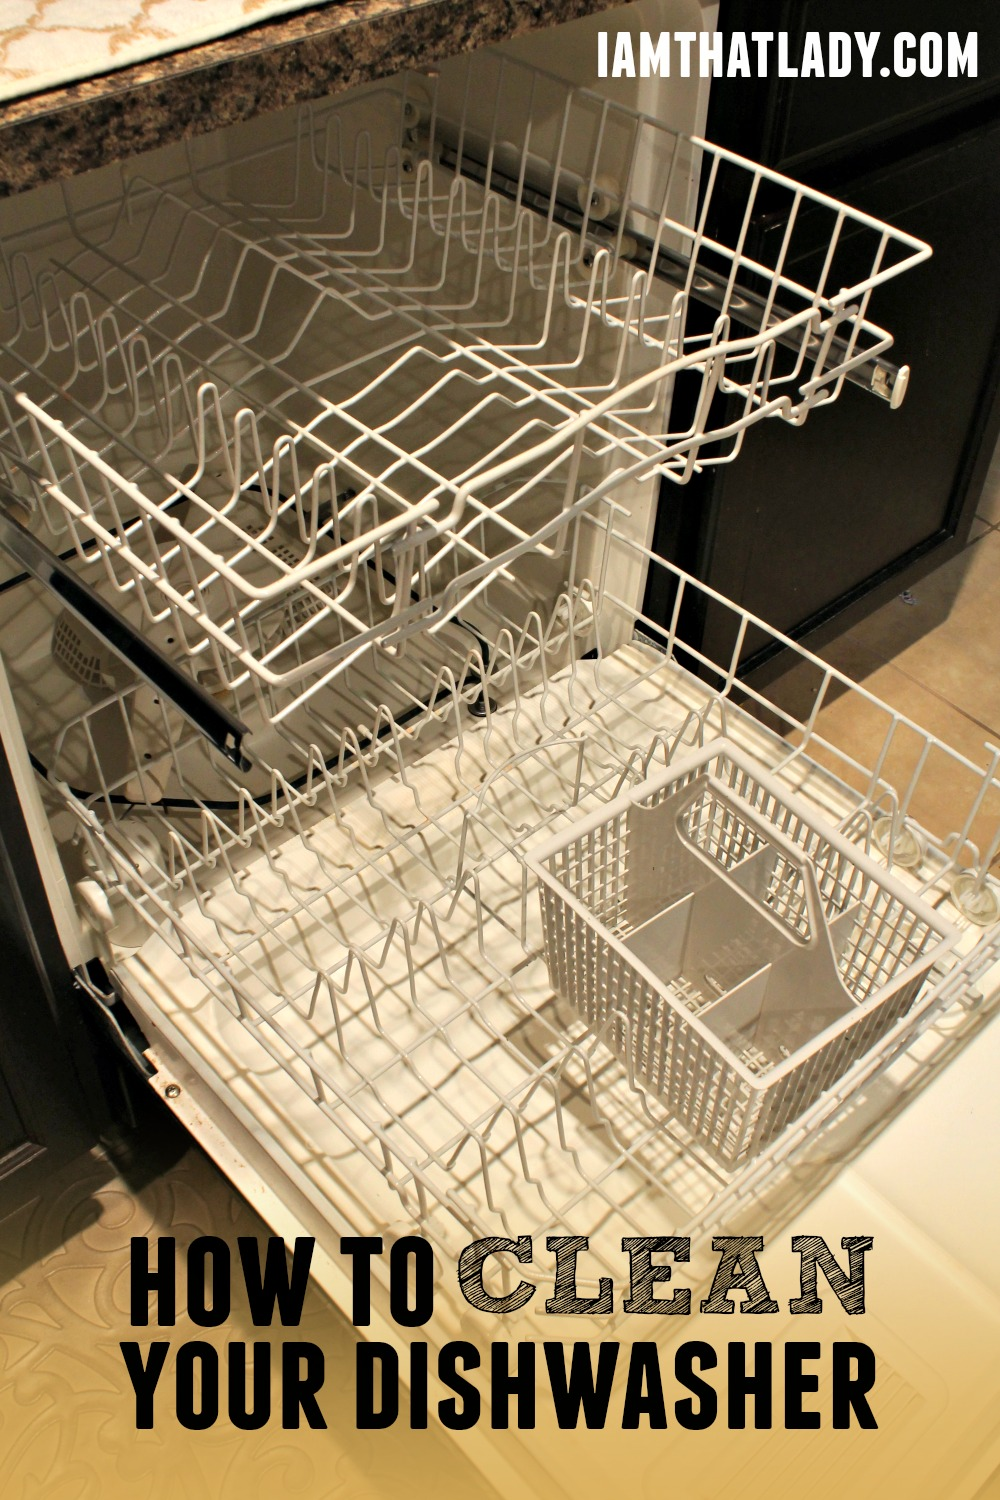 Are you wondering How to Clean Your Dishwasher? Here is how you can do it in two simple steps!